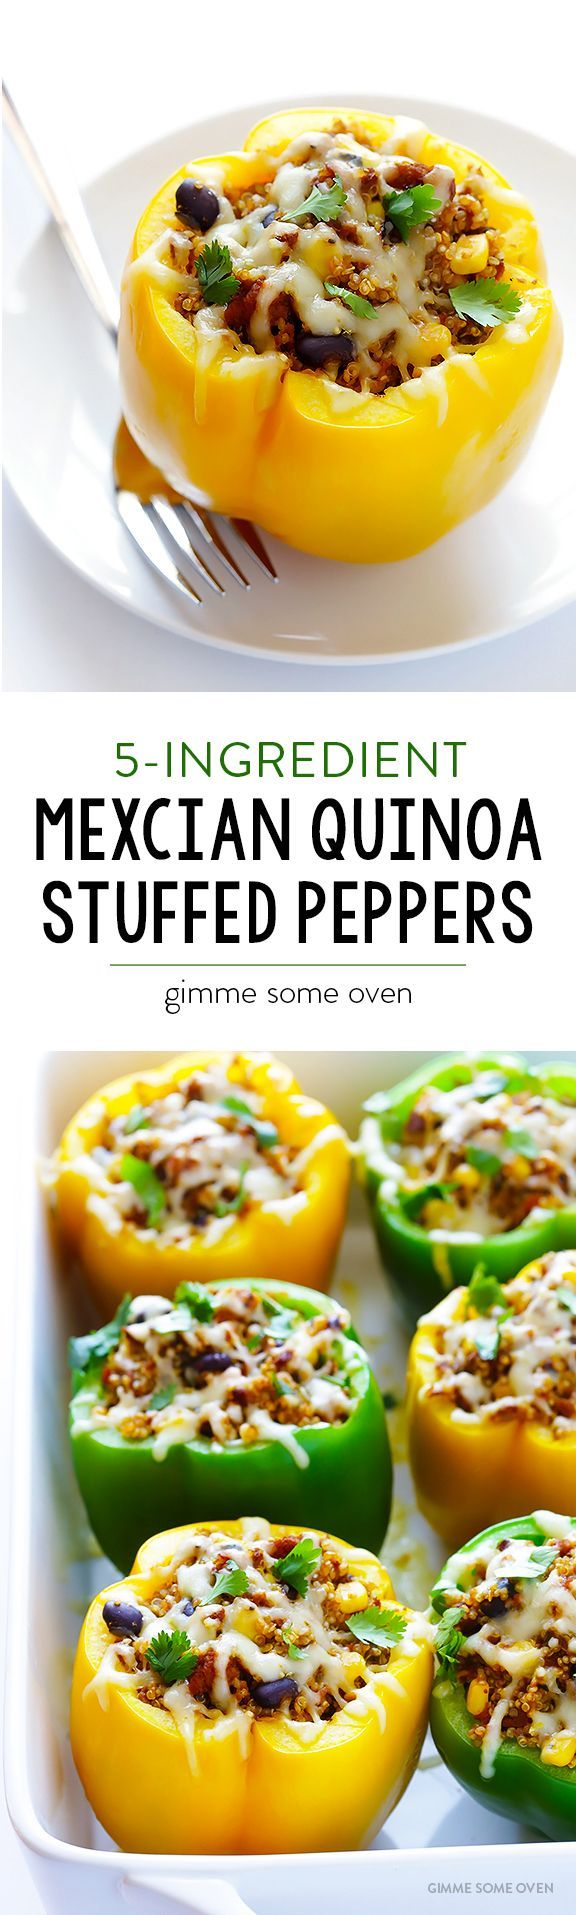 5-Ingredient Mexican Quinoa Stuffed Peppers -- vegetarian, simple to make & super delicious! http://snip.ly/nWBm